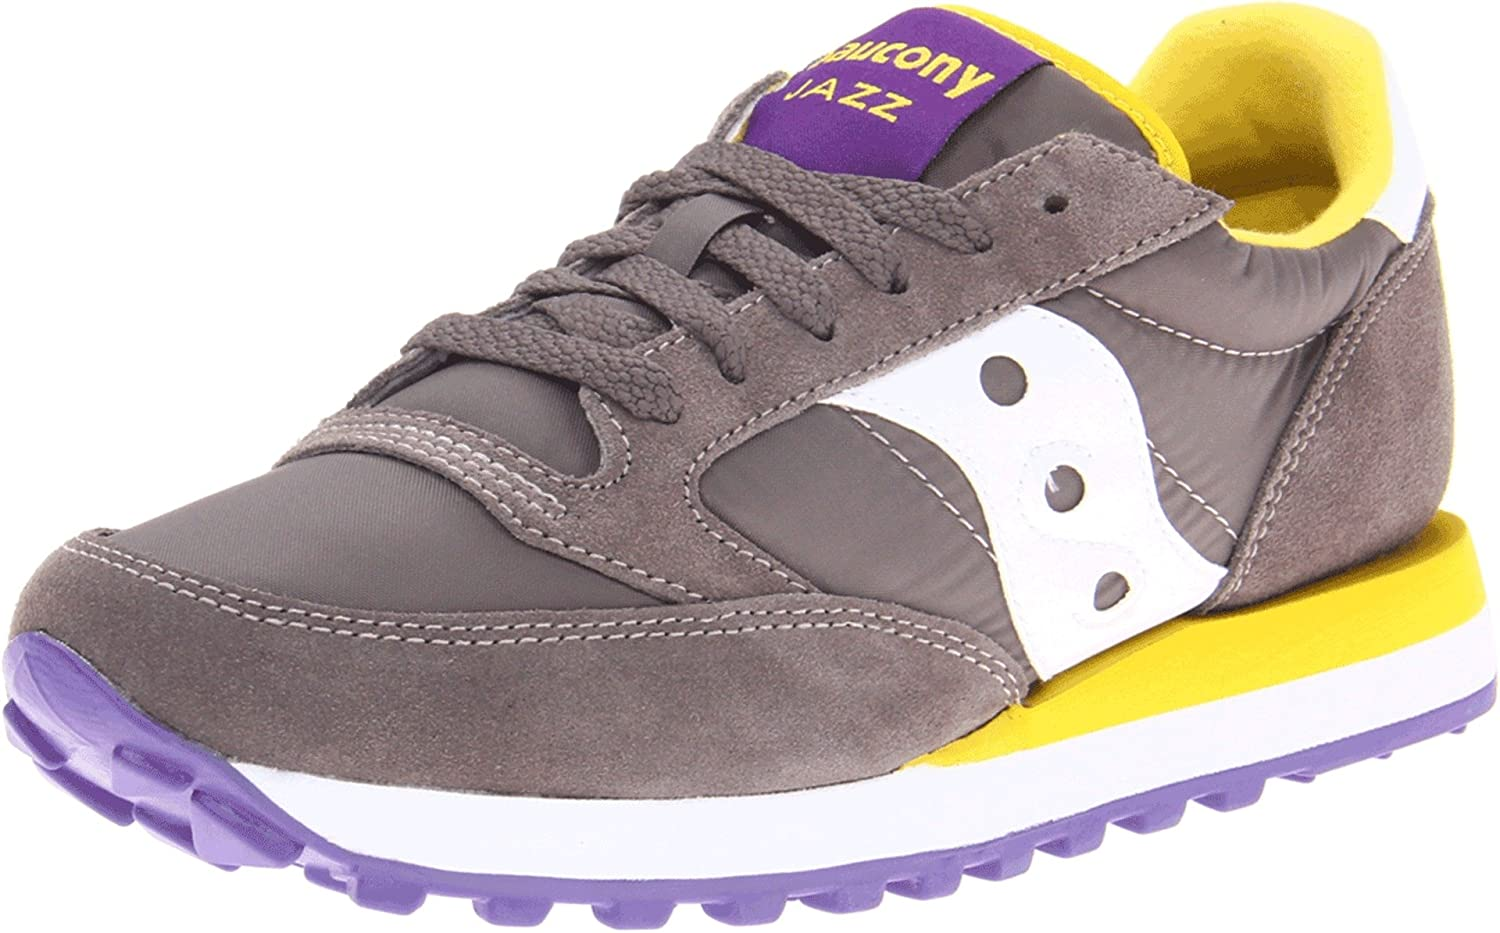 Saucony Originals Women's Jazz Original Sneaker B0083LPU0I 8 M US|Charcoal/Yellow/Purple